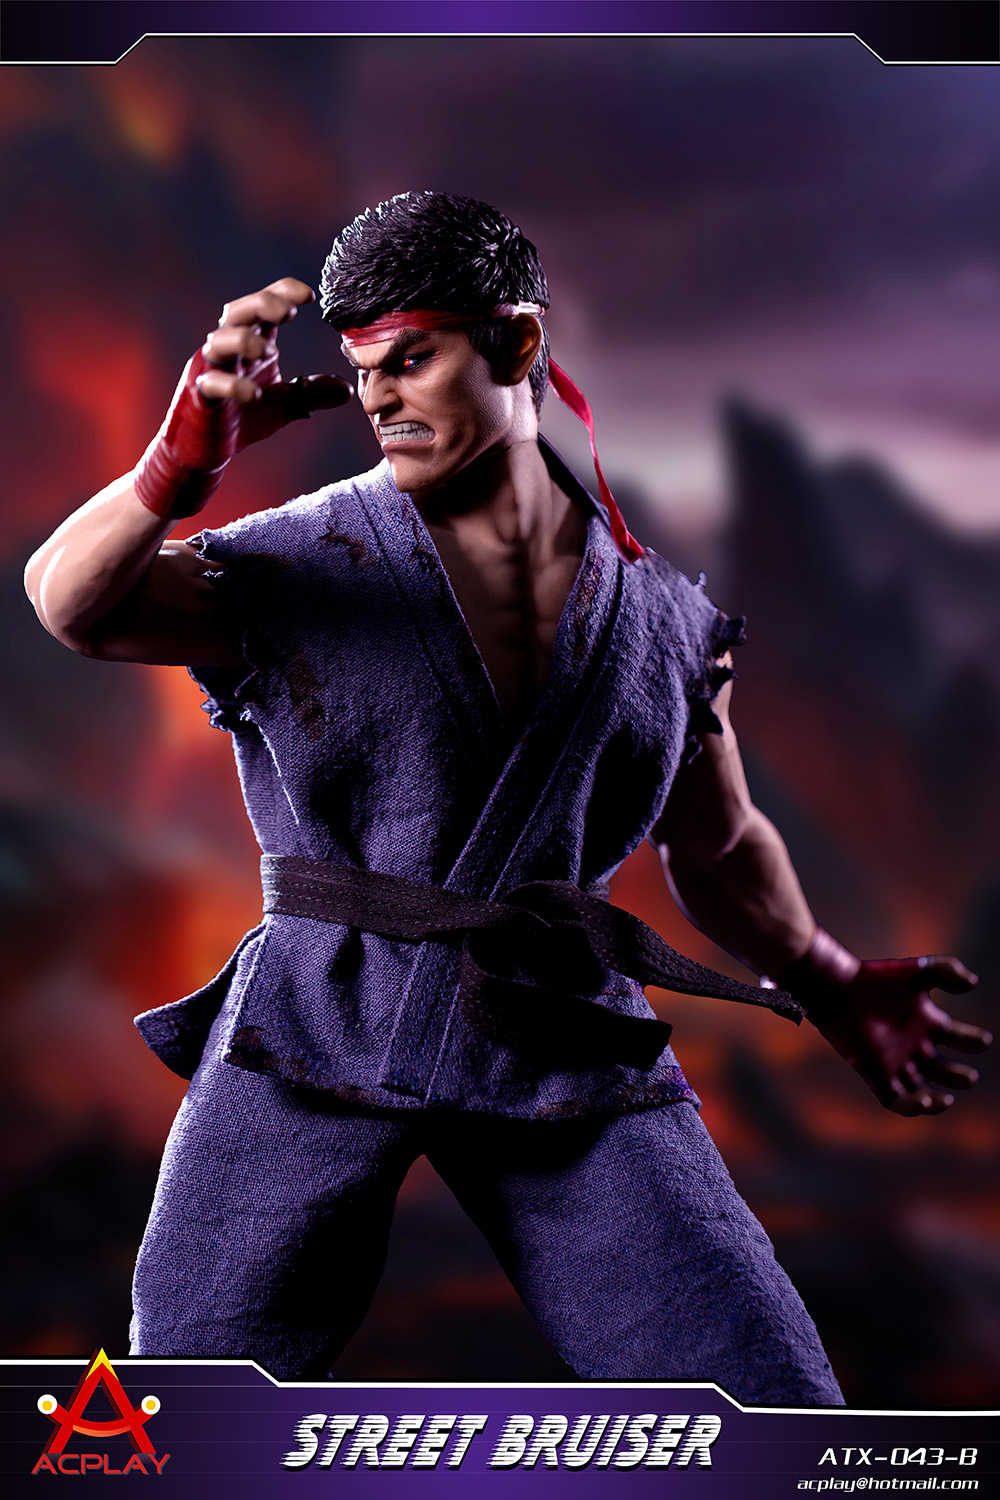 NEW PRODUCT: ACPLAY new products: 1/6 ATX043 Street Fighters practice martial arts A/B suit 11192210